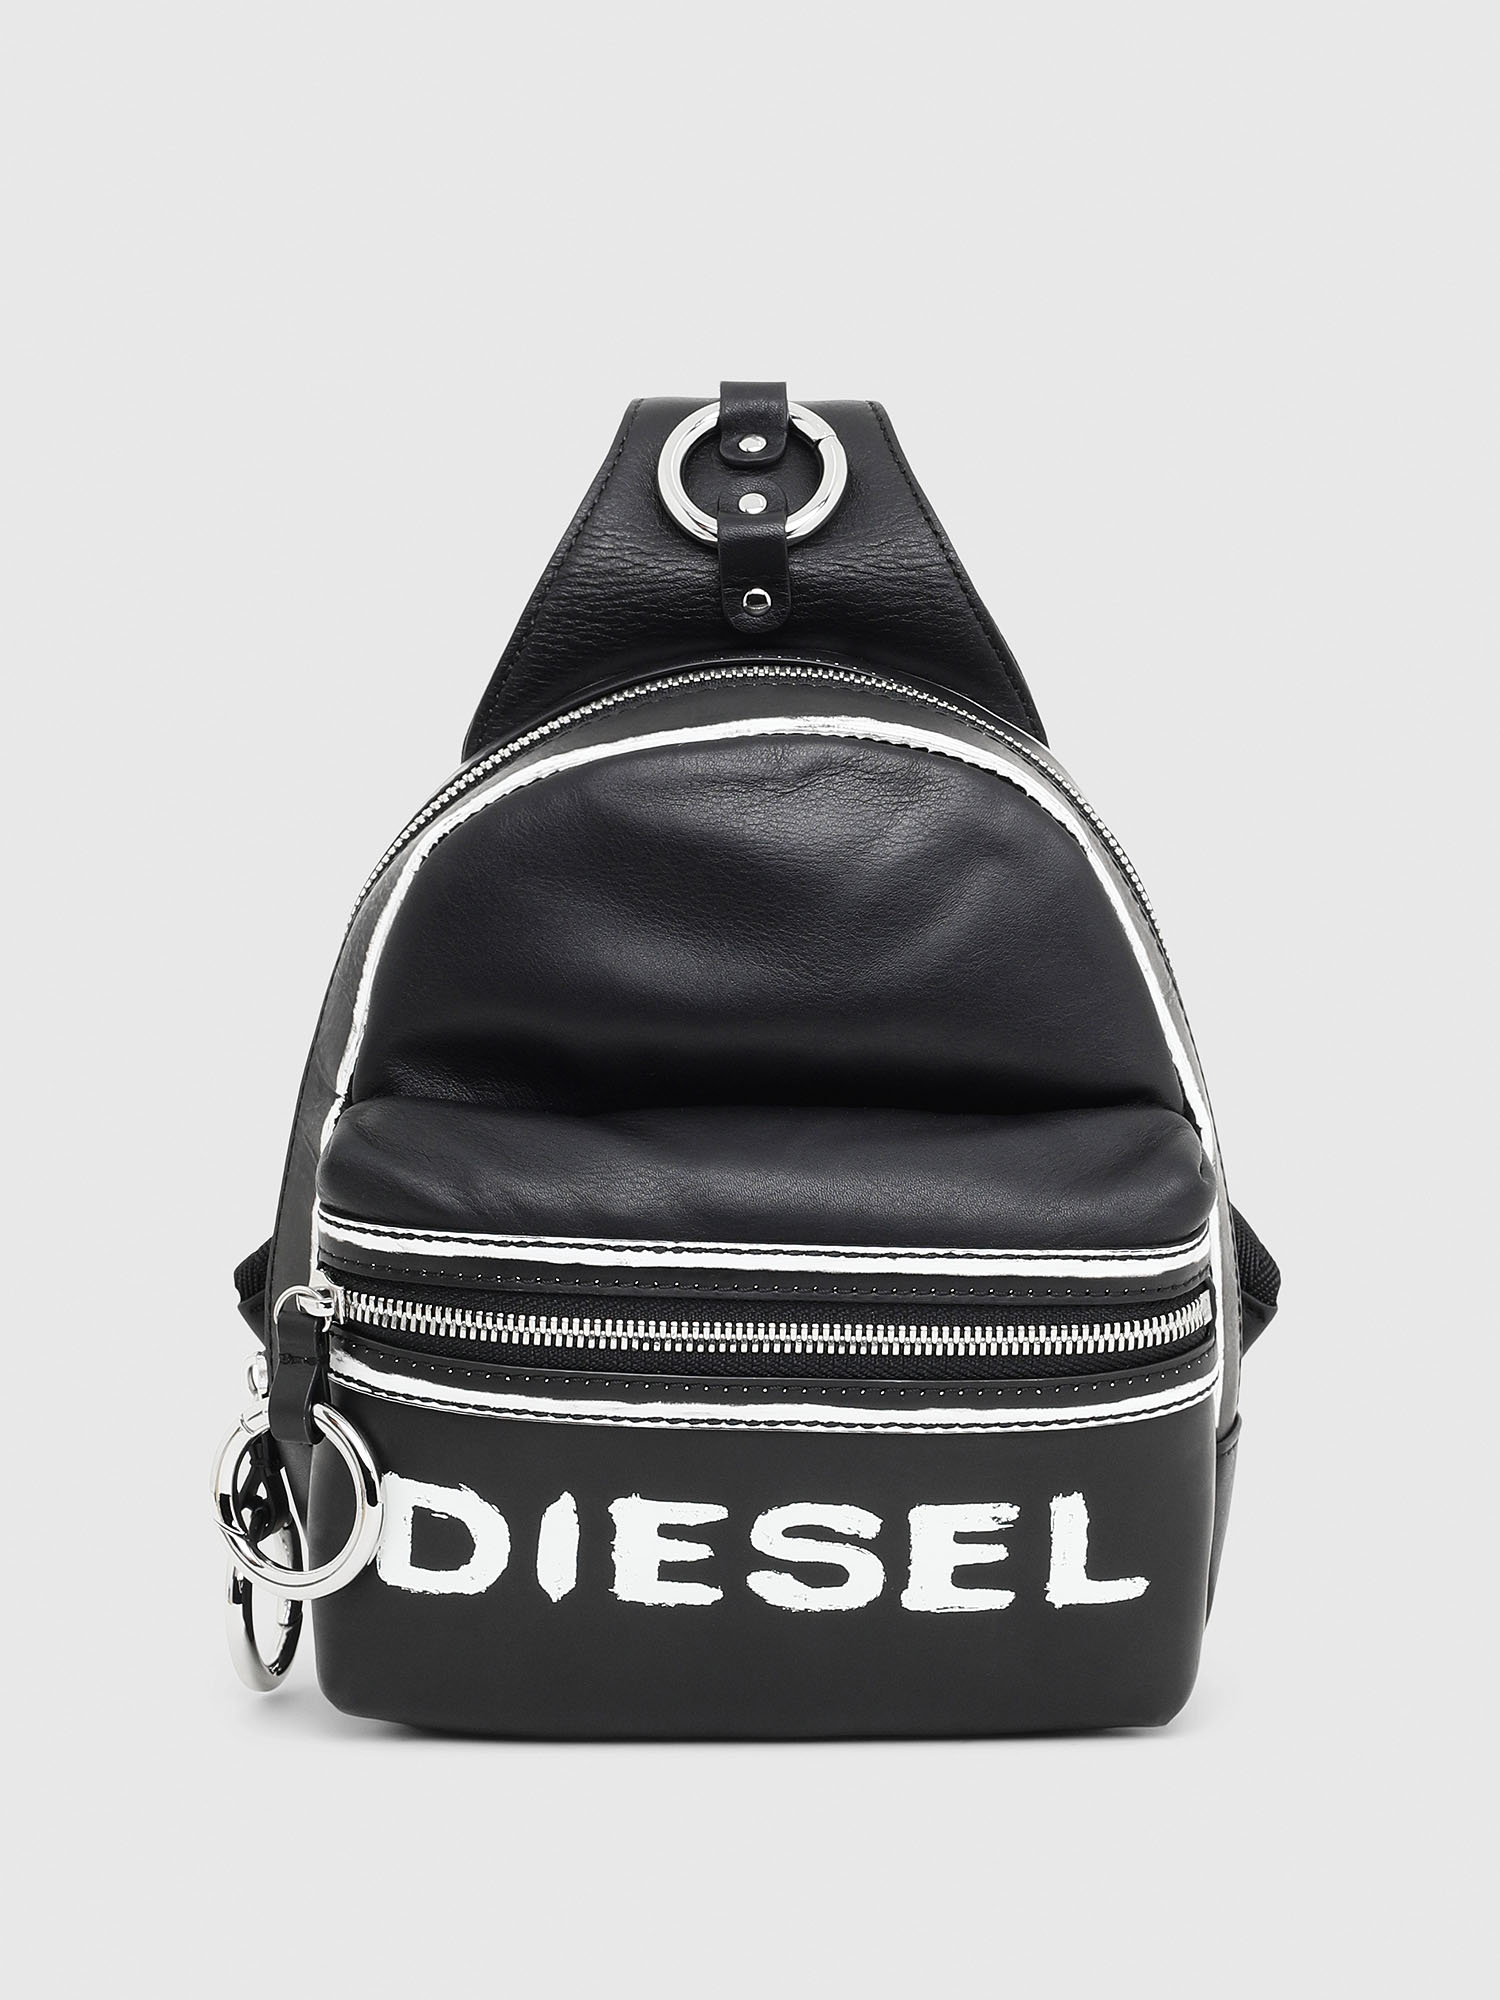 Diesel Backpacks P0286 - Black